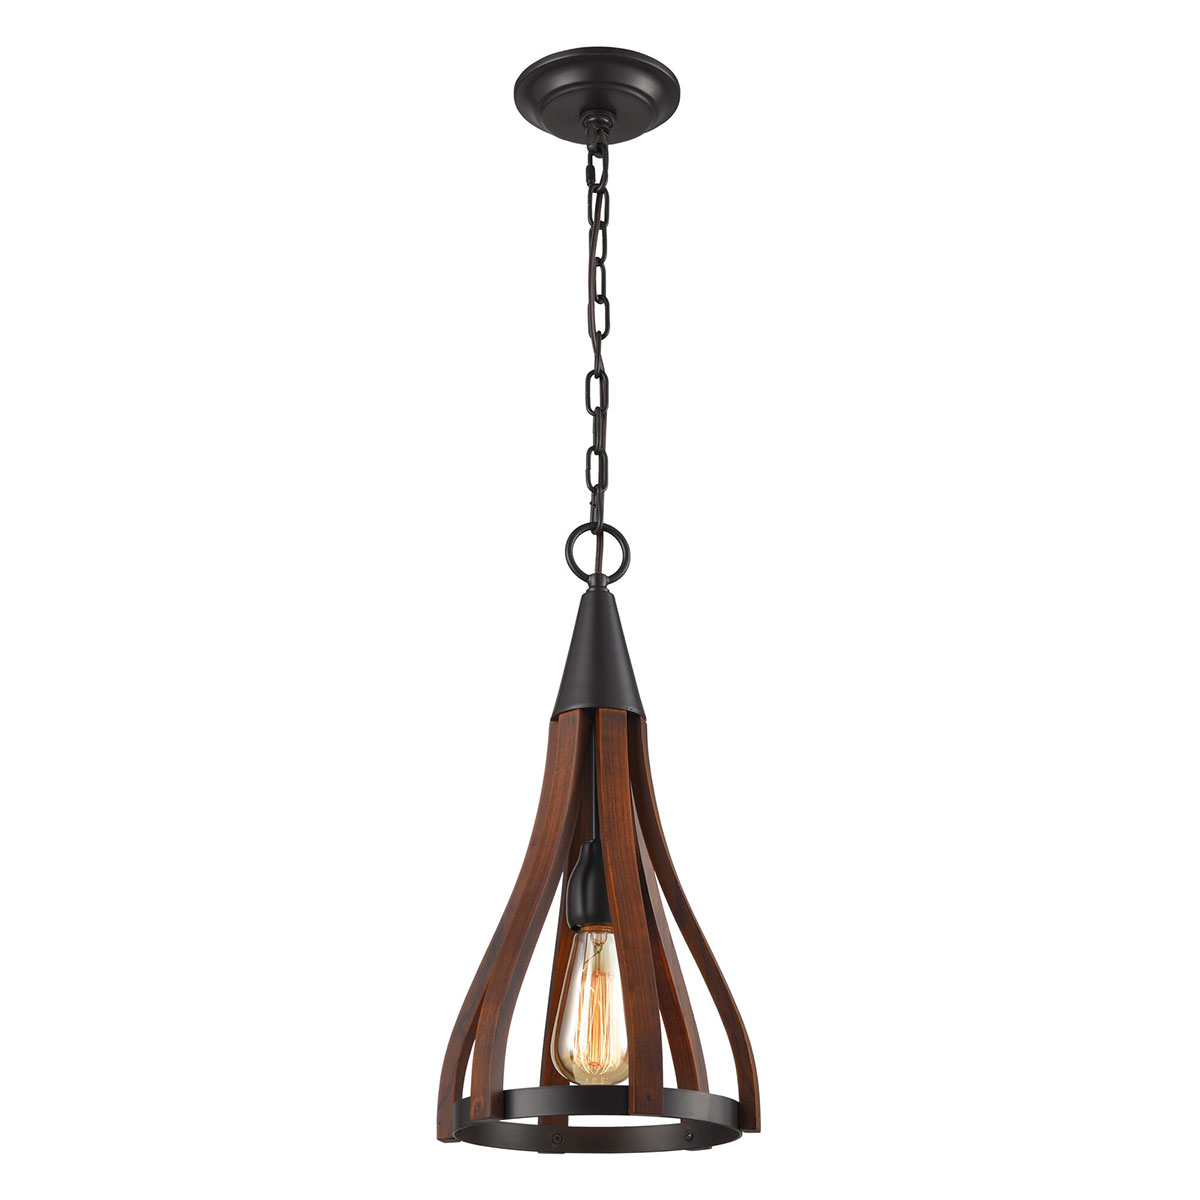 Modern timber 1 light pendant khaleesi1 online lighting modern timber 1 light pendant dark red khaleesi1 mozeypictures Image collections